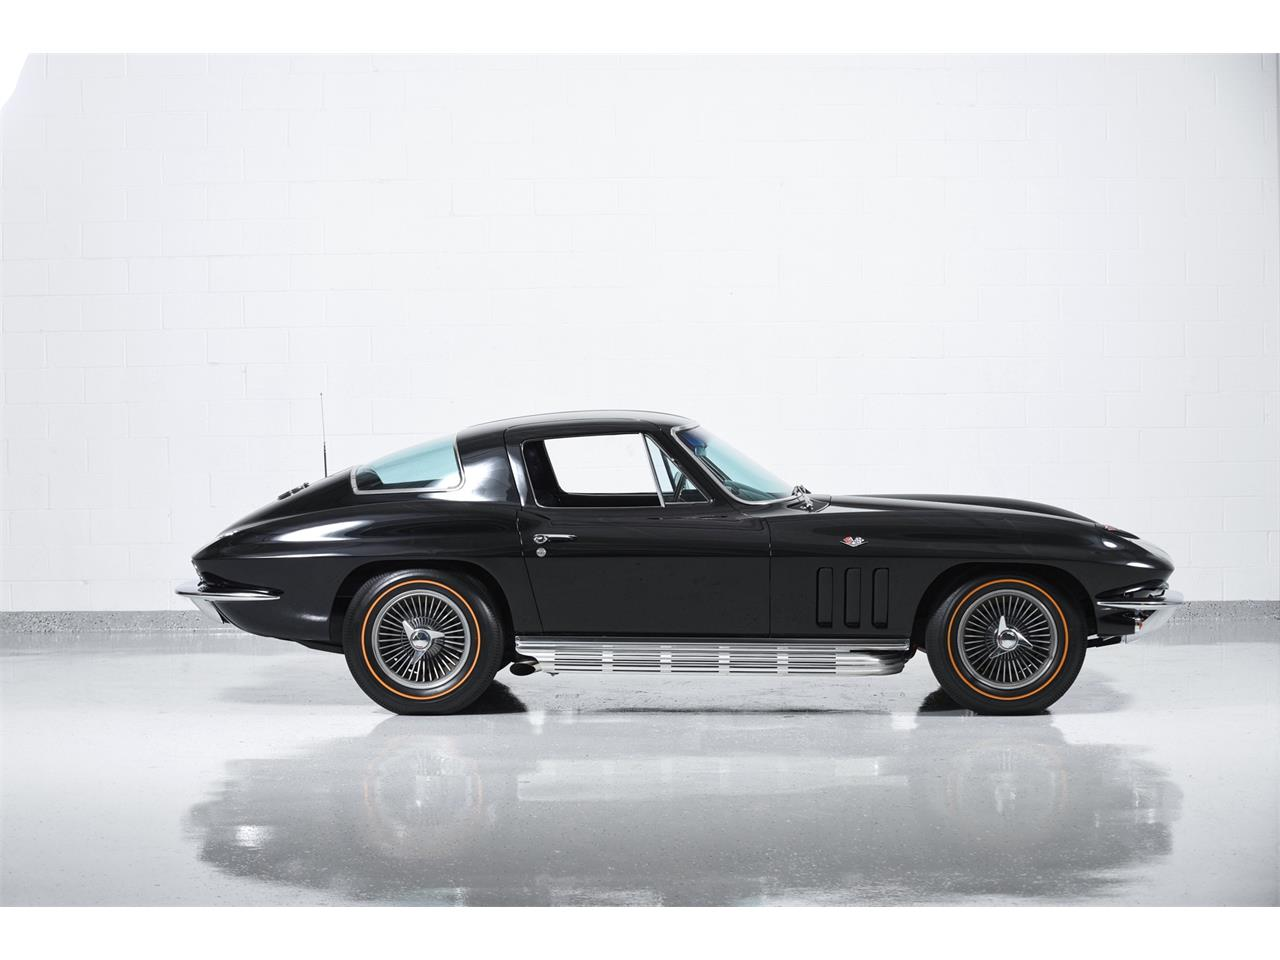 Large Picture of Classic '66 Corvette located in New York - $79,900.00 - Q1WK